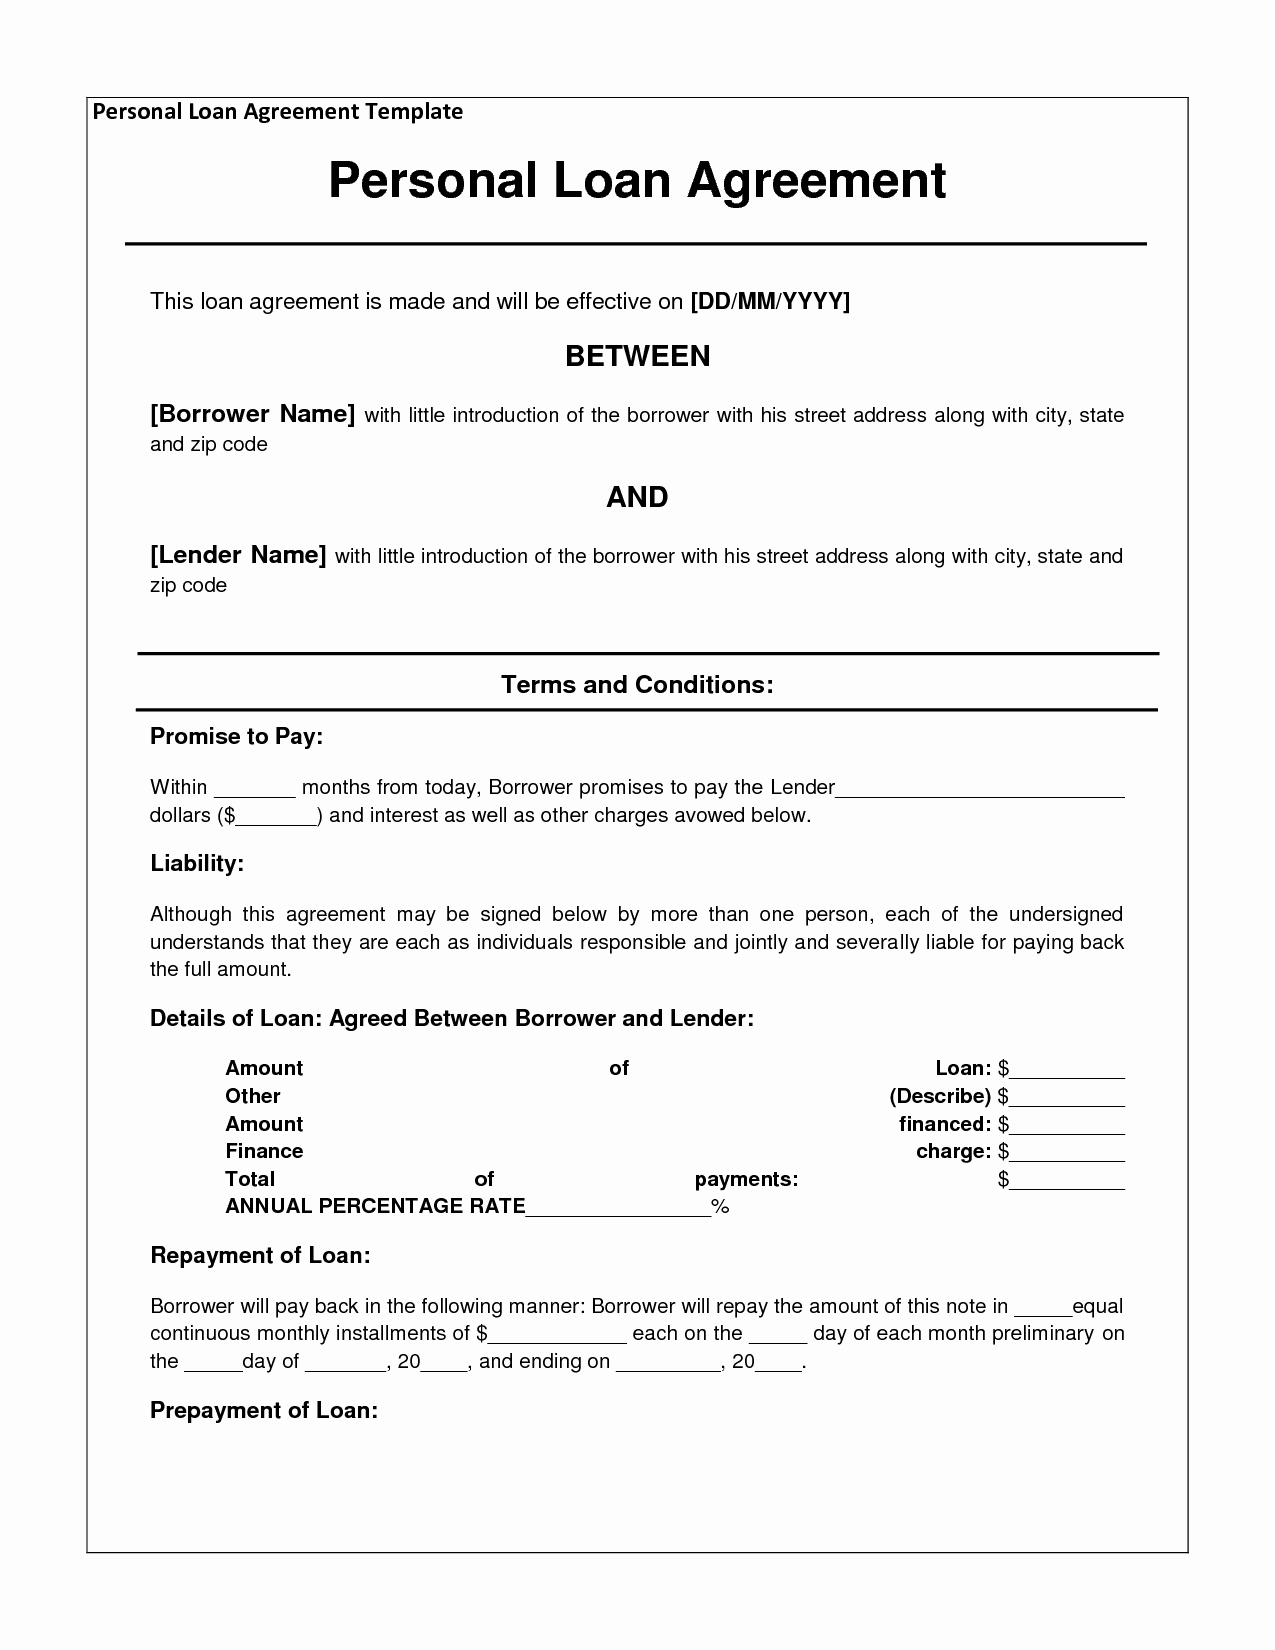 Personal Loan Contract Template Lovely 14 Loan Agreement Templates Excel Pdf formats